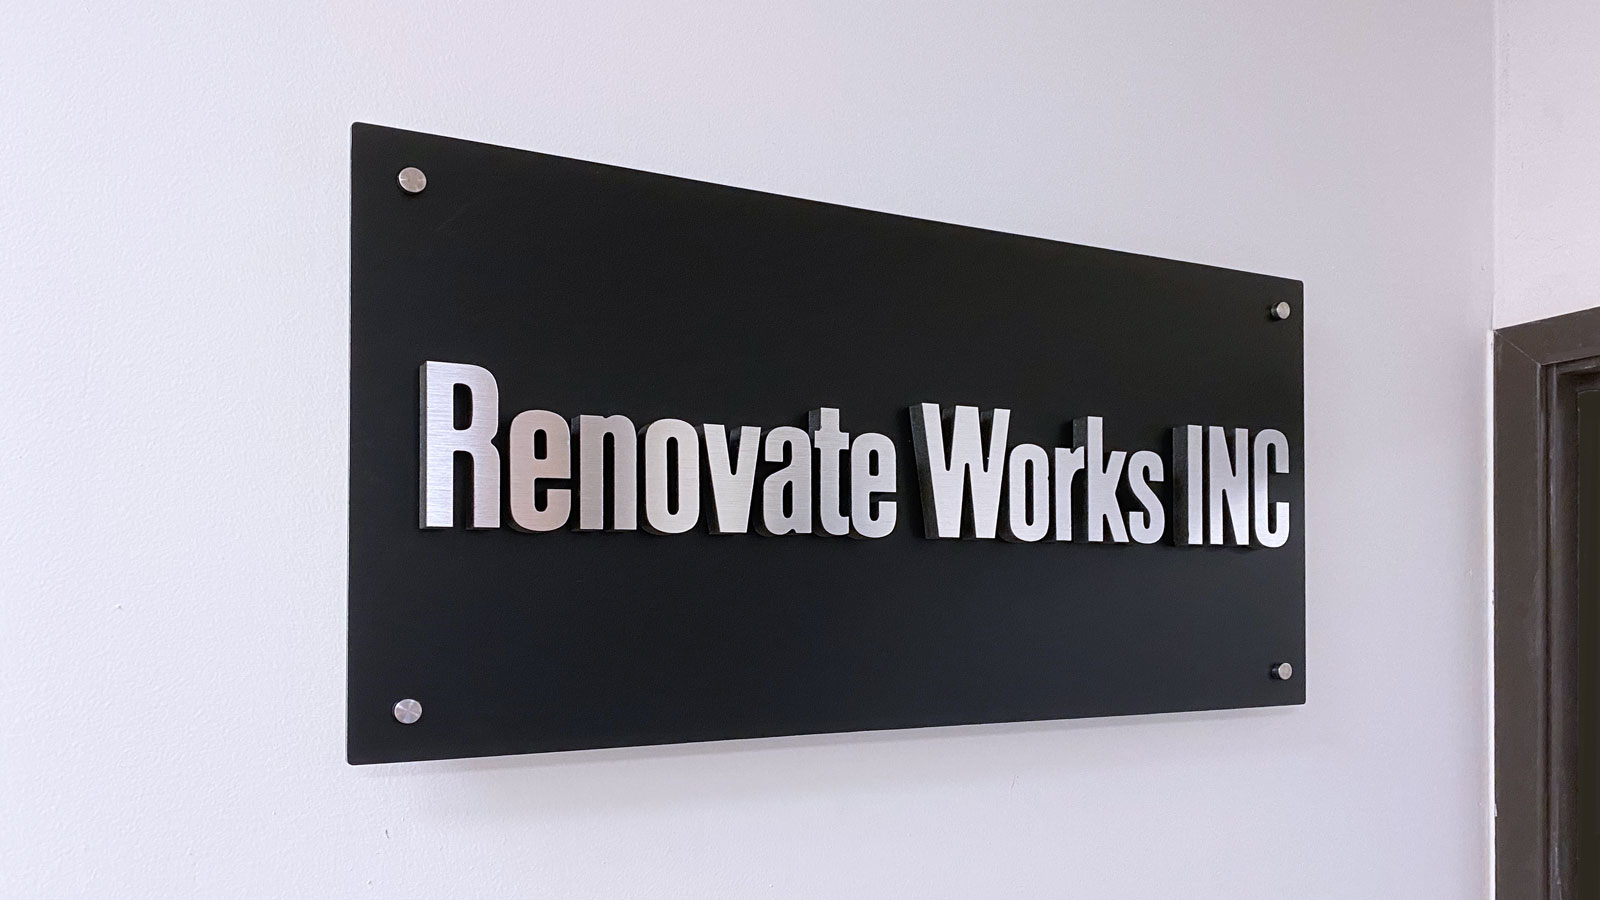 Renovate Works Inc. office 3D letter sign